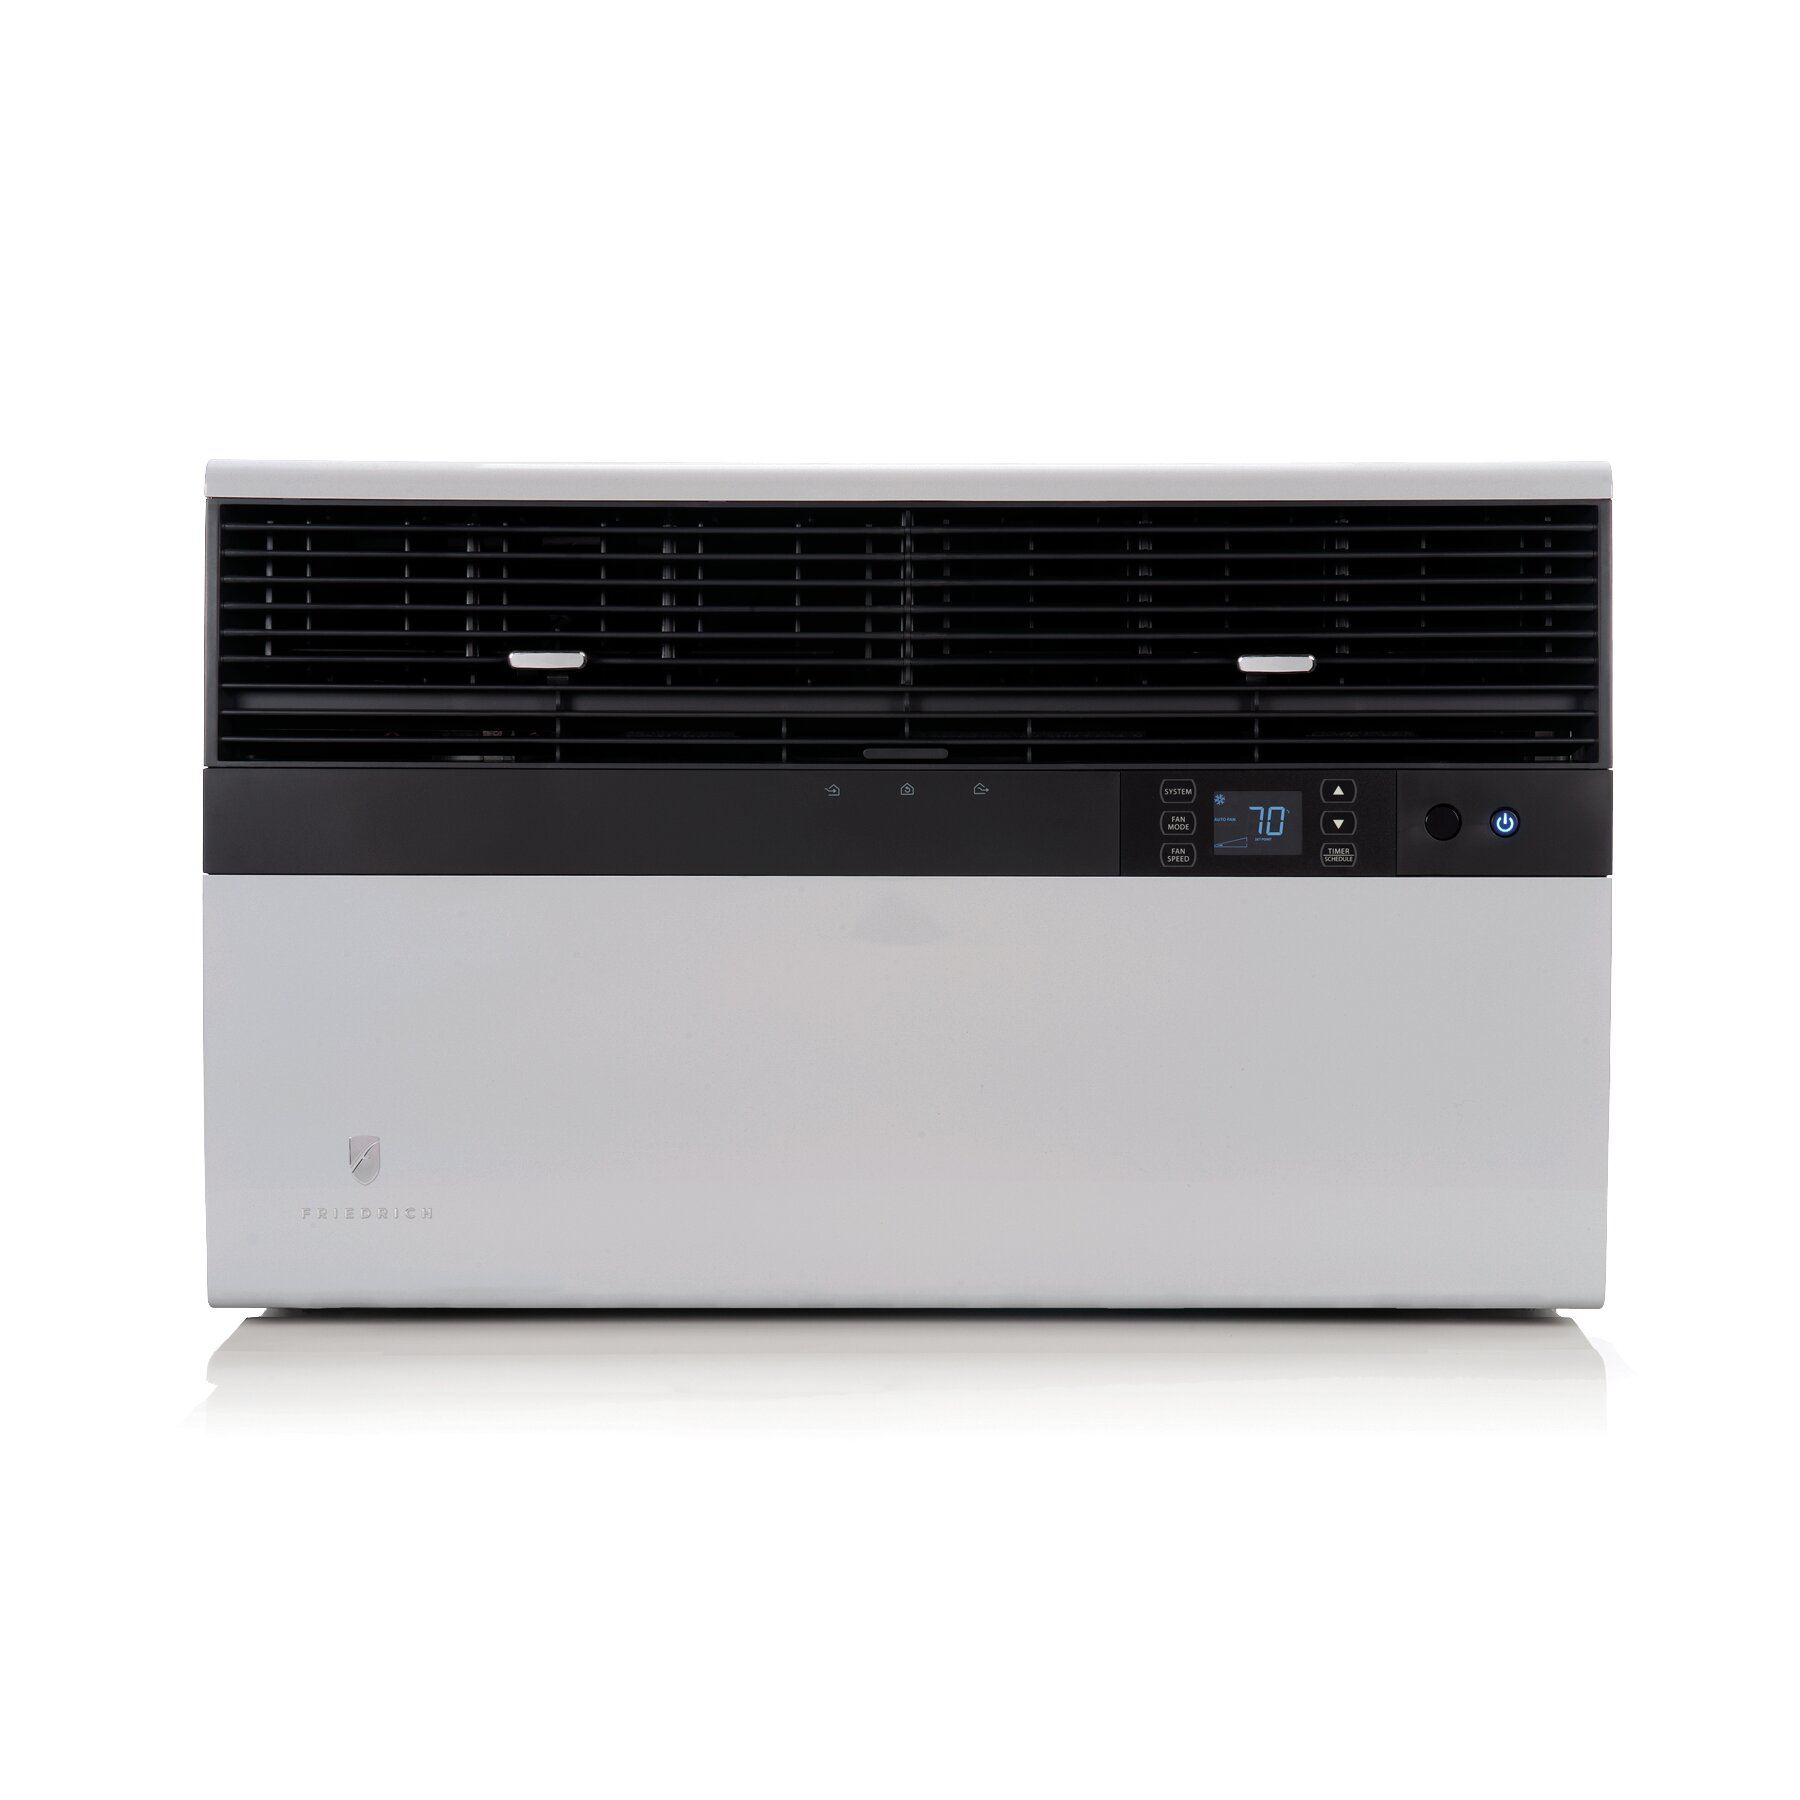 Friedrich kuhl 12000 btu energy star window air for 12000 btu window ac with heat